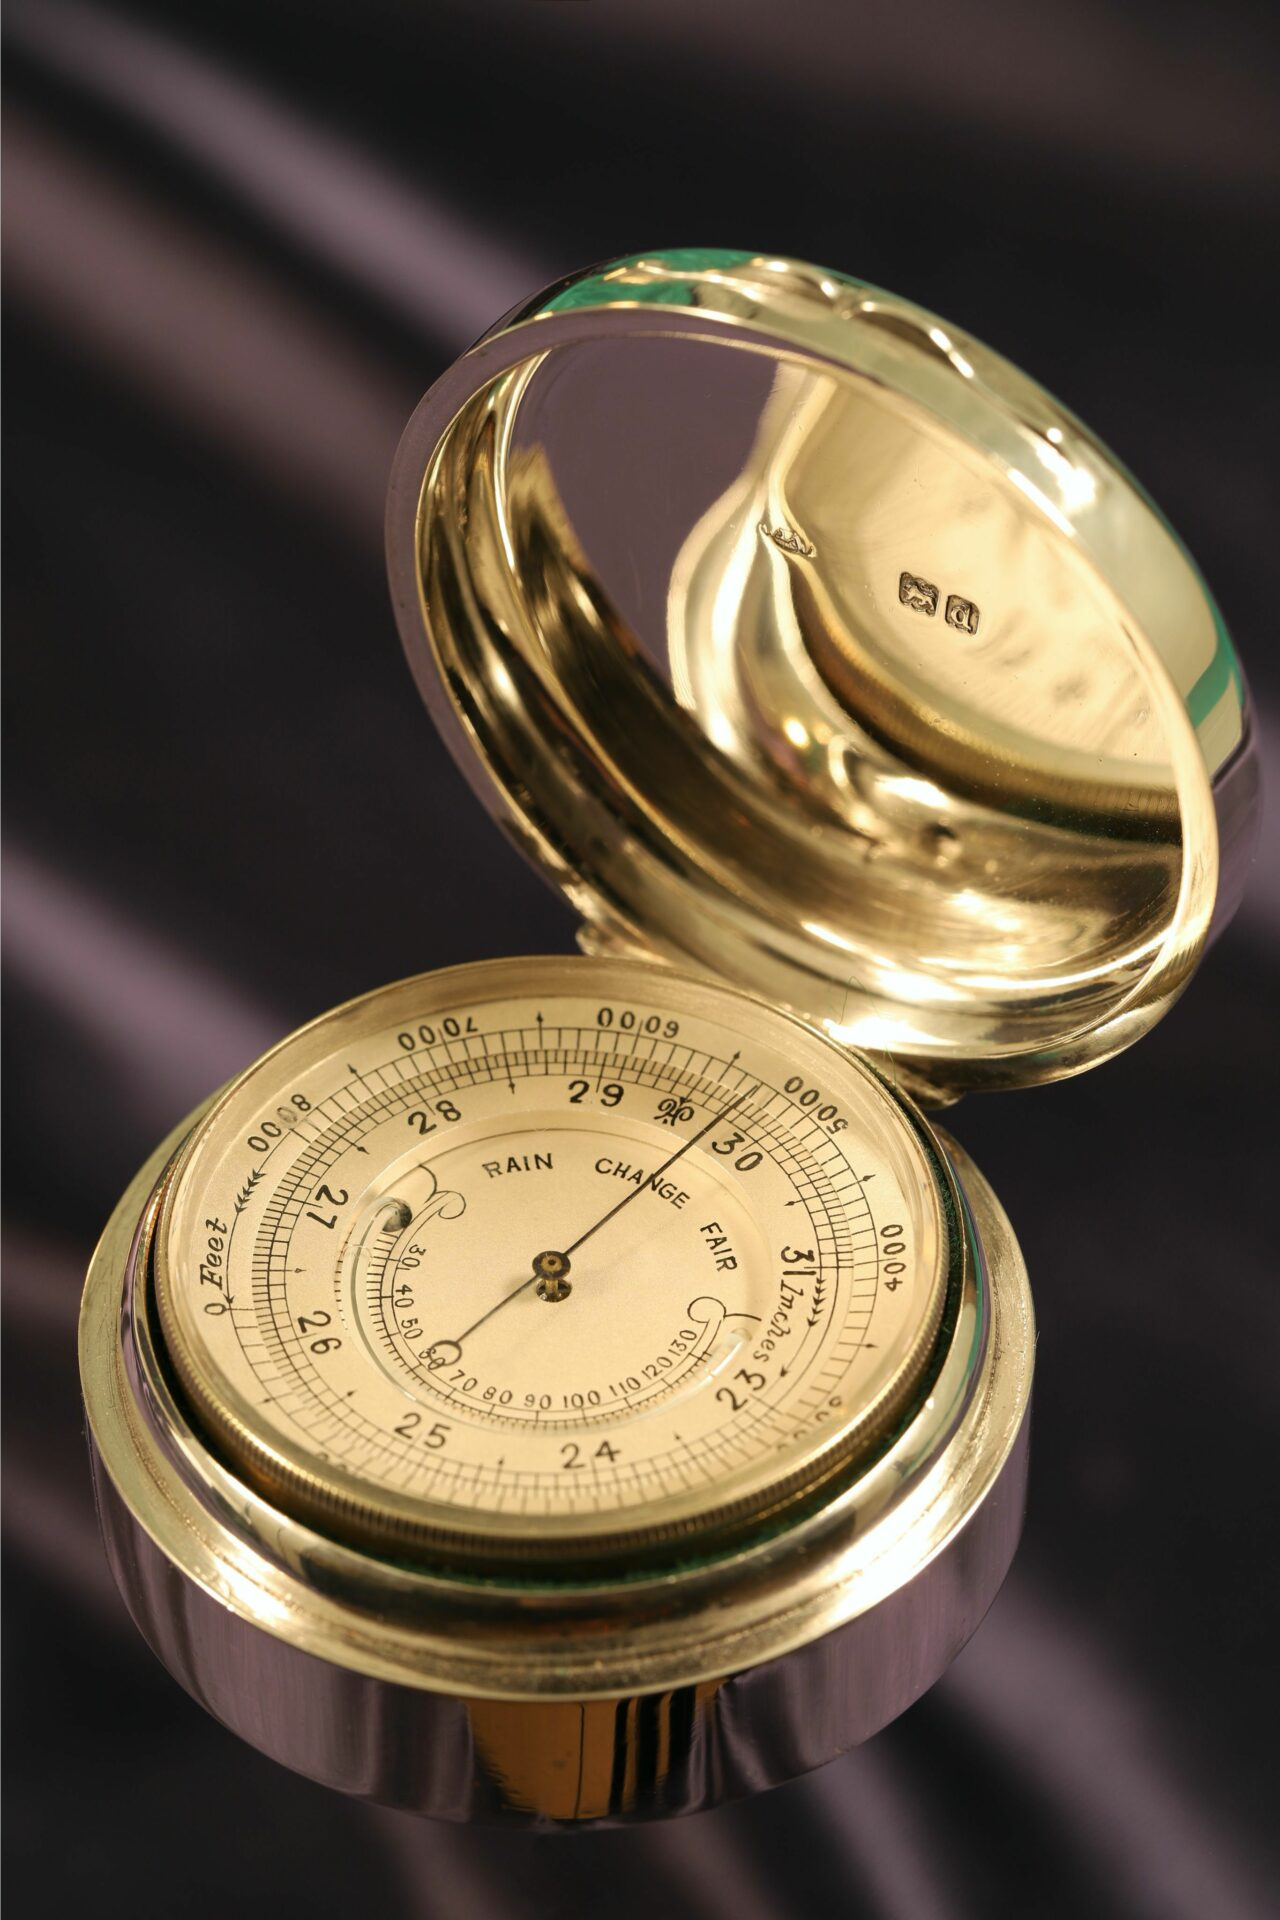 Image of the open case for Silver Pocket Barometer Compendium by Thornhill c1899 showing the dial and the inner lid hallmarks taken from right